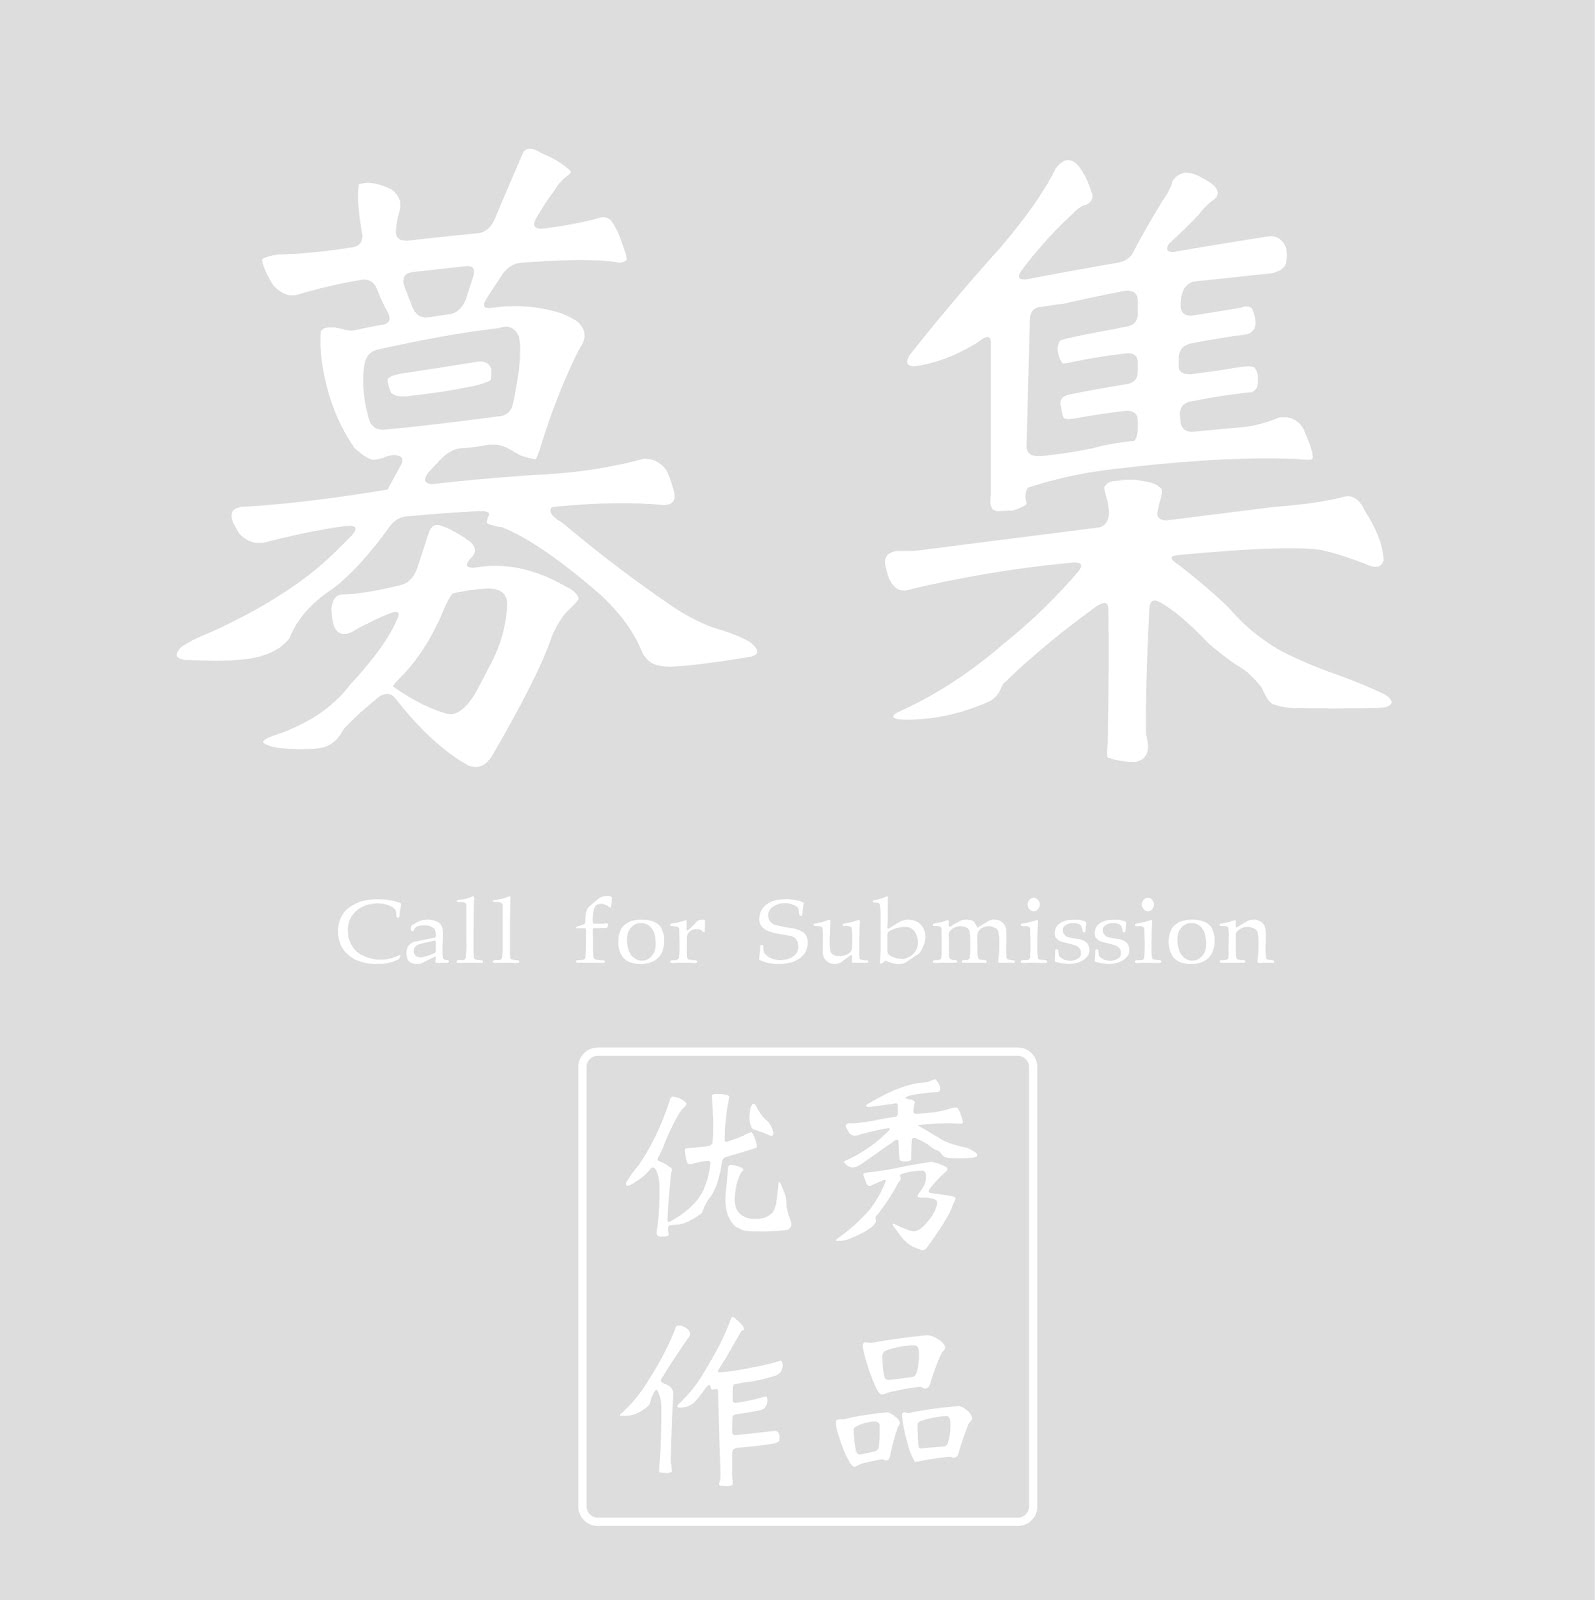 Submit Your Works